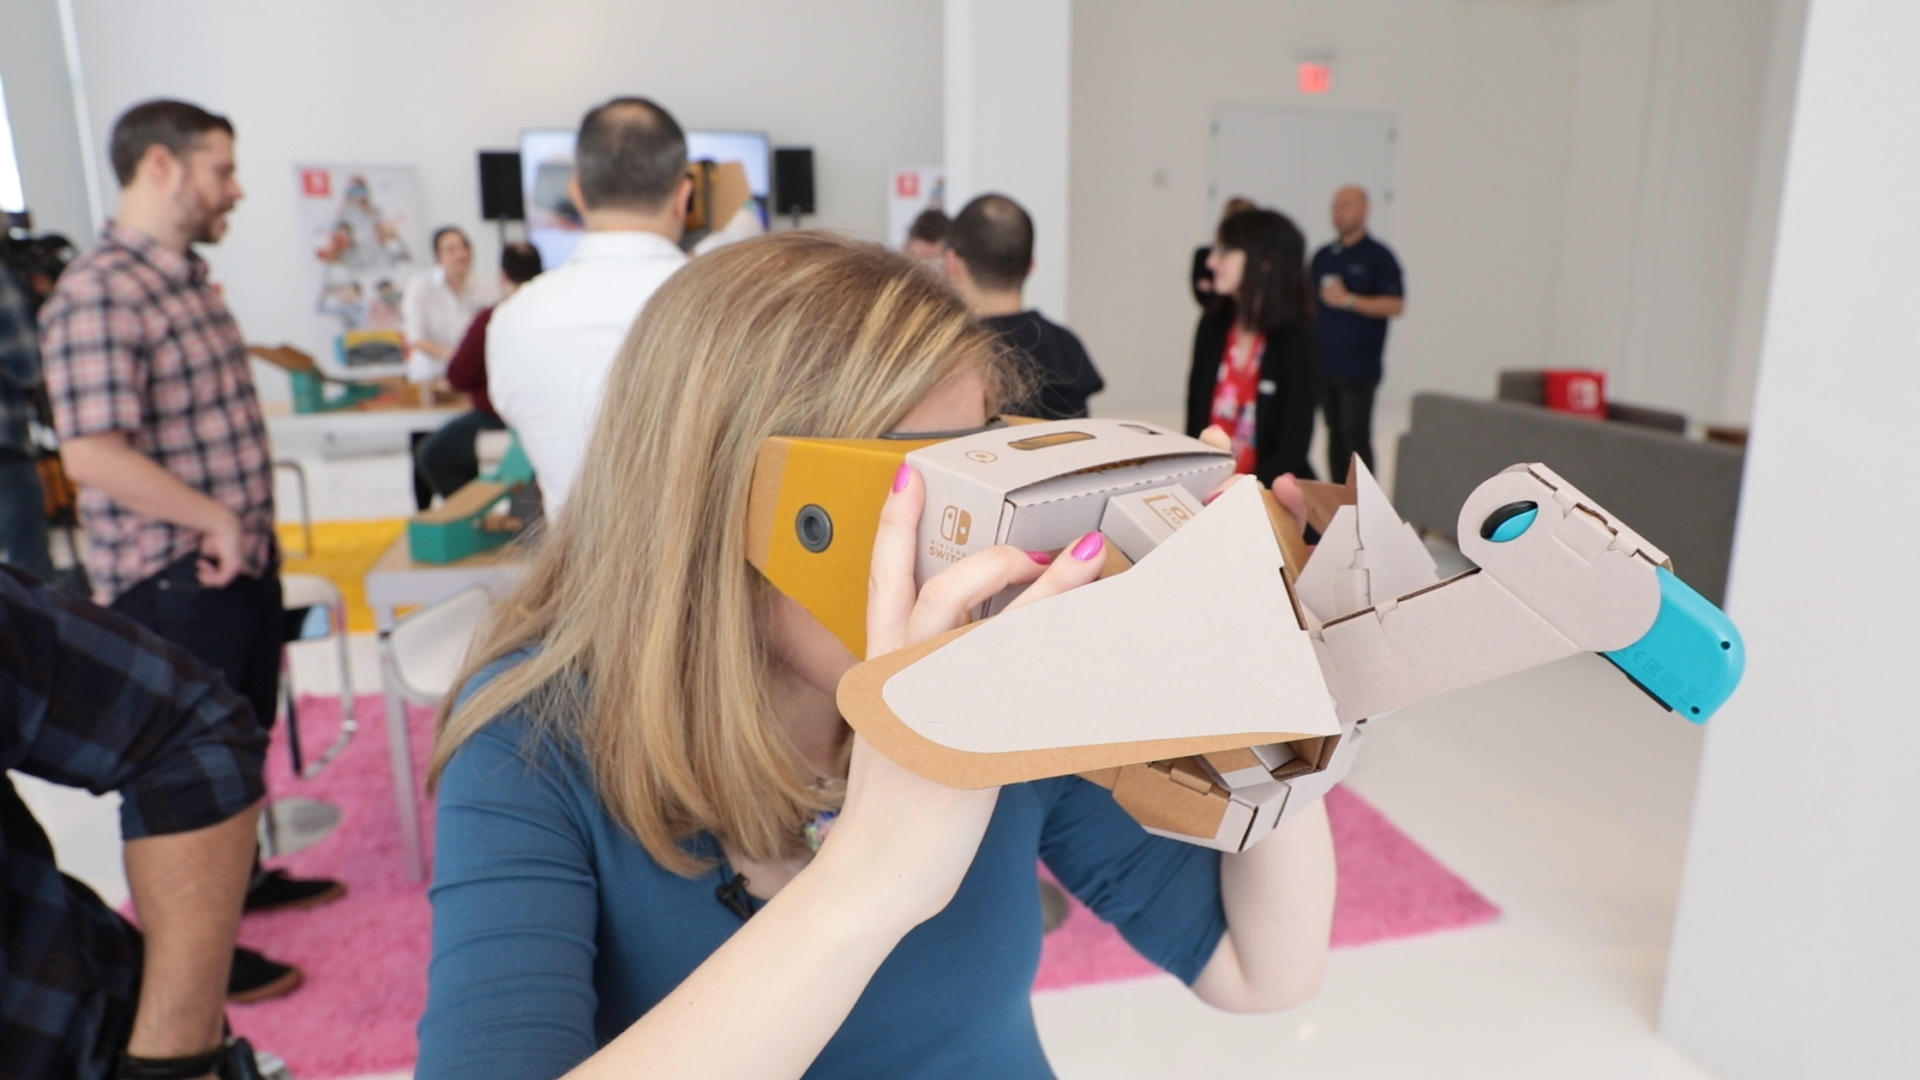 Video: Nintendo Labo VR hands-on: This virtual reality gets weird